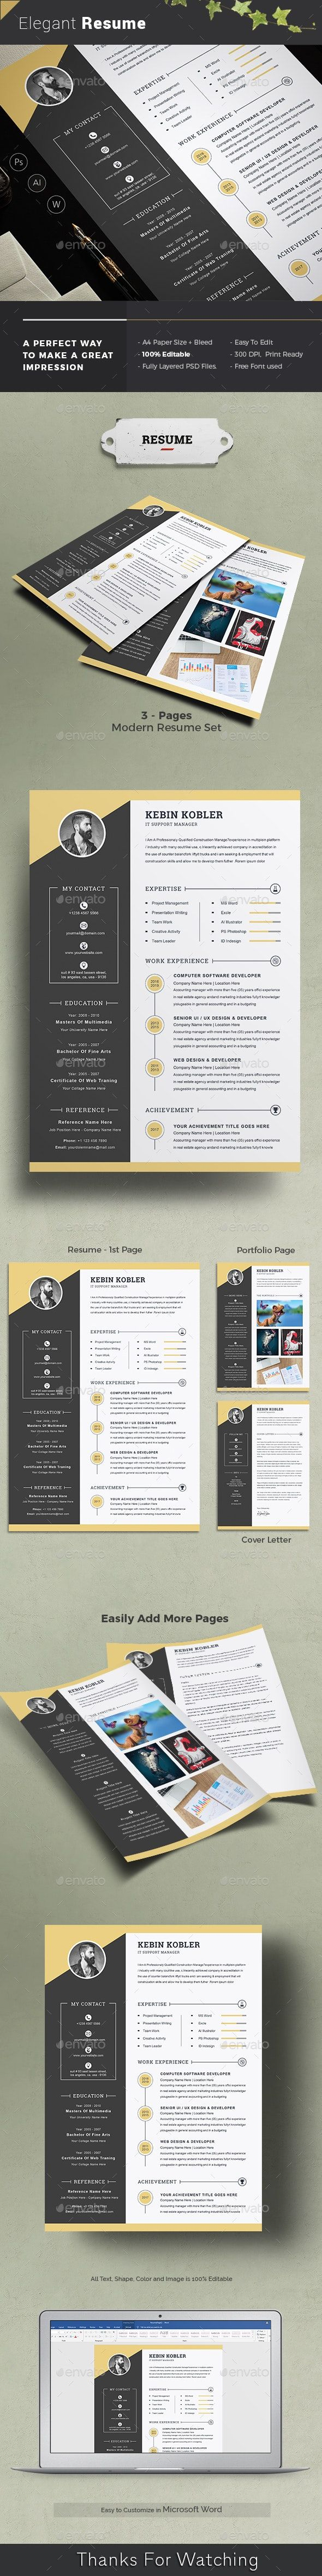 Resume Resumes Stationery Resume, Templates, Graphic